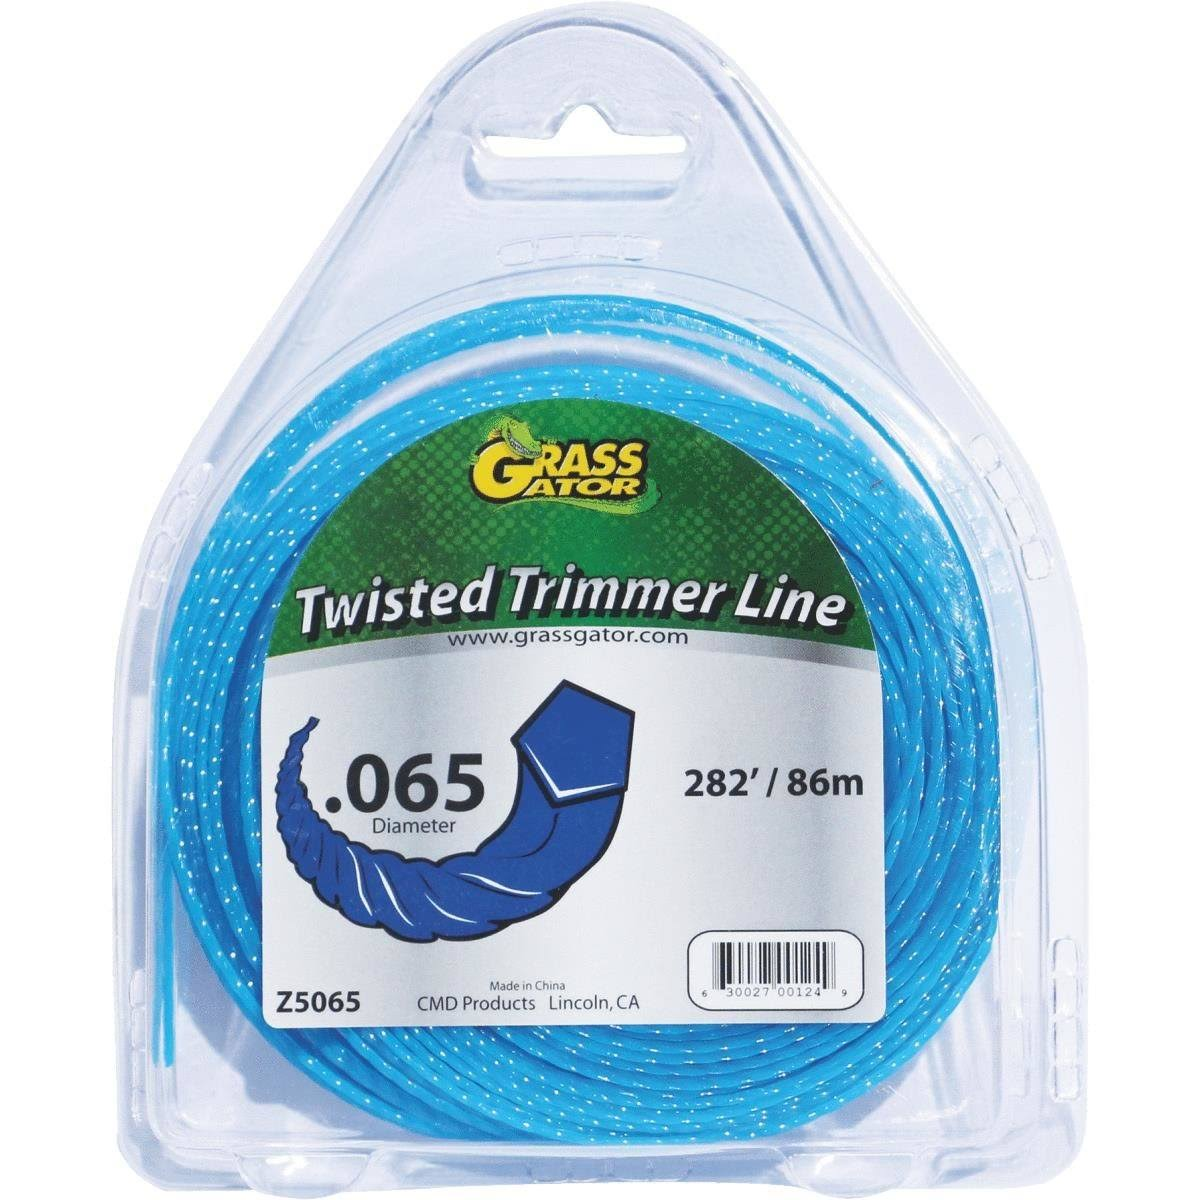 Grass Gator Twisted Trimmer Line